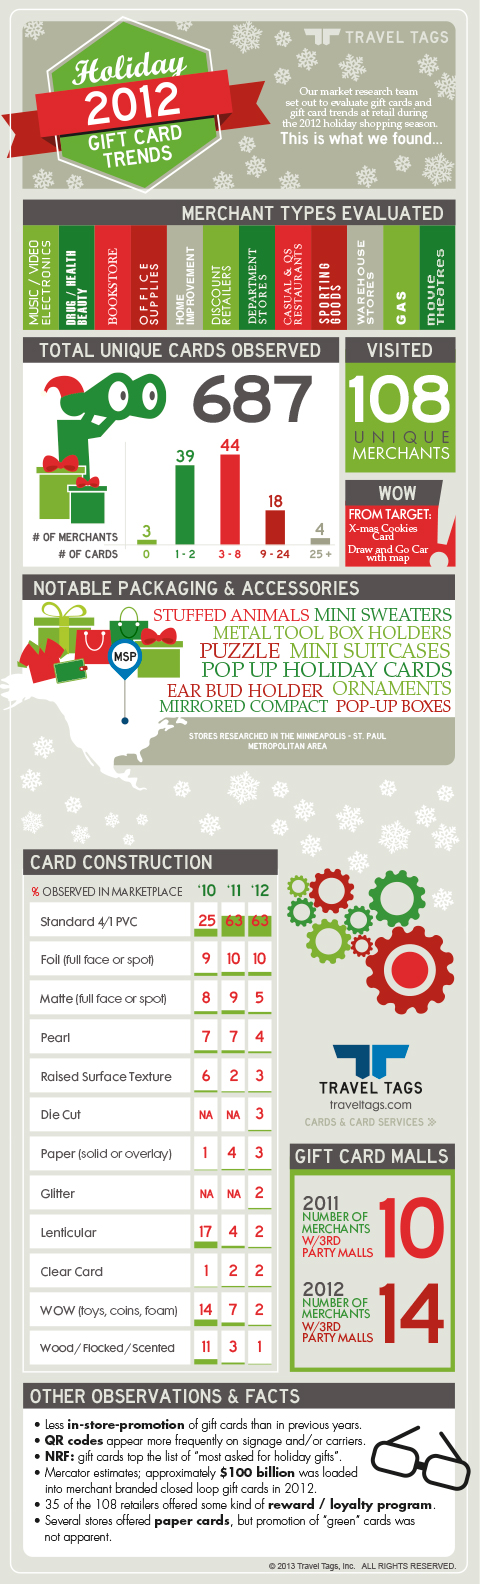 Gift Card Trends Holiday 2012